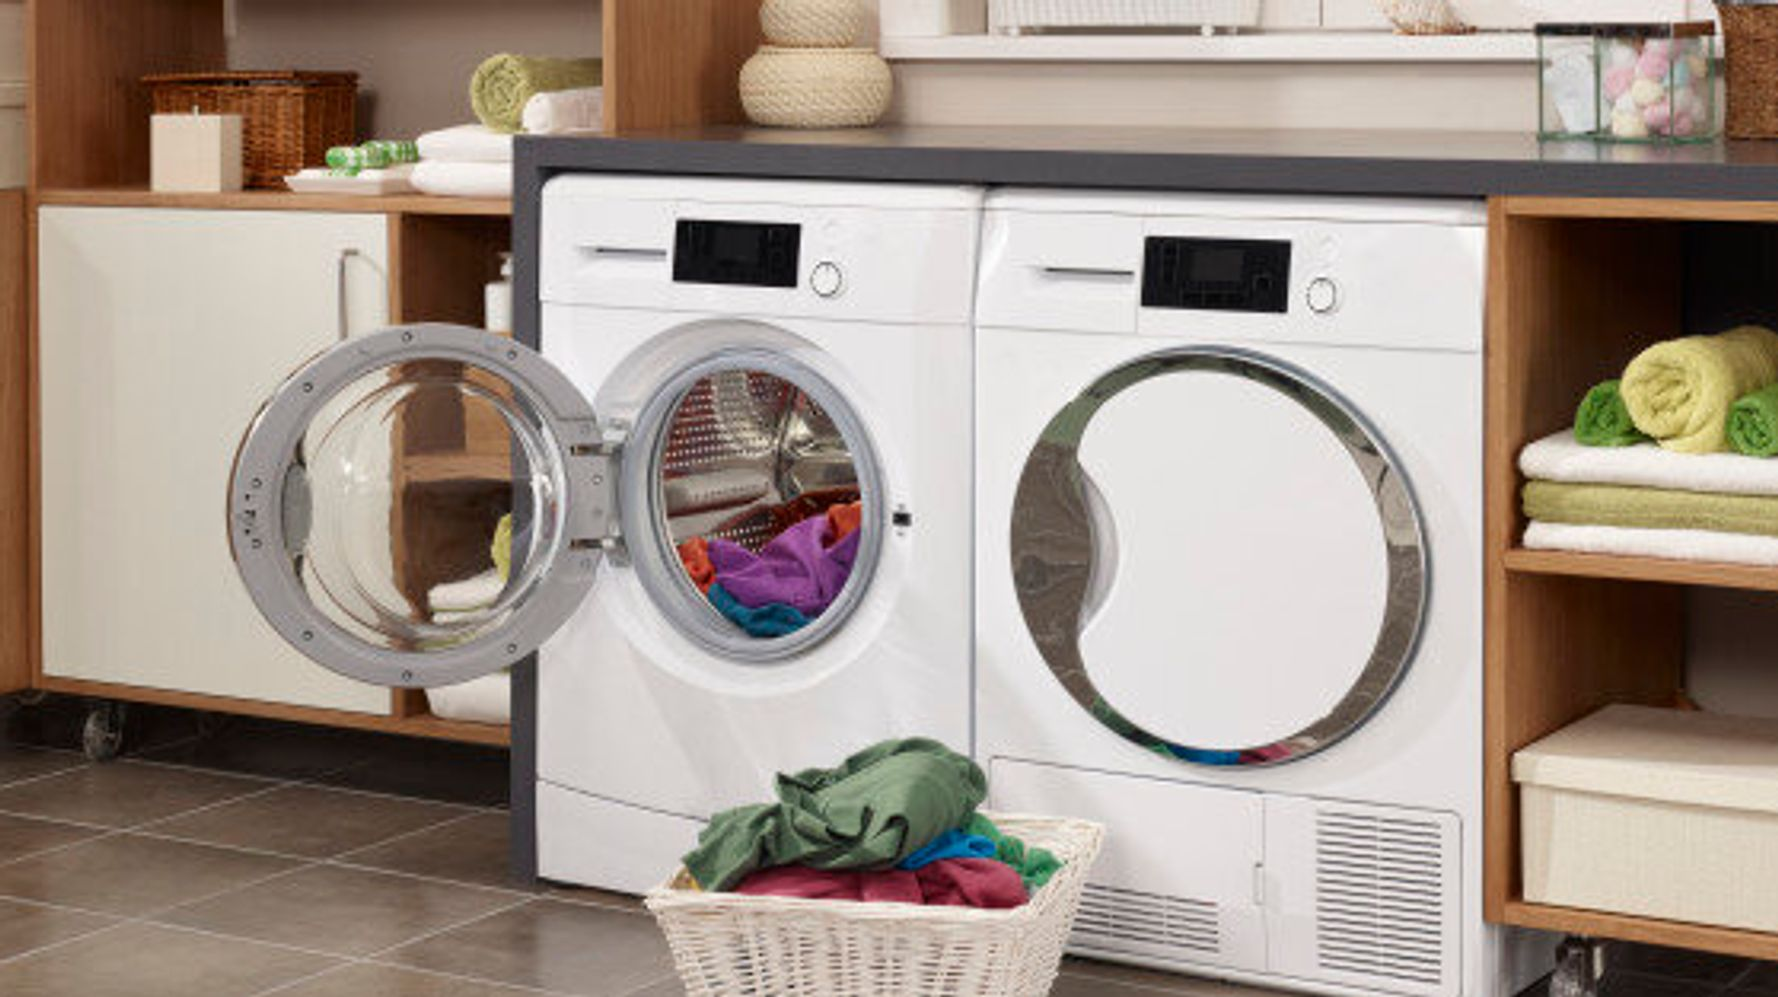 Laundry Room Storage Ideas 15 Ways To Keep Clutter At Bay Huffpost Canada Life